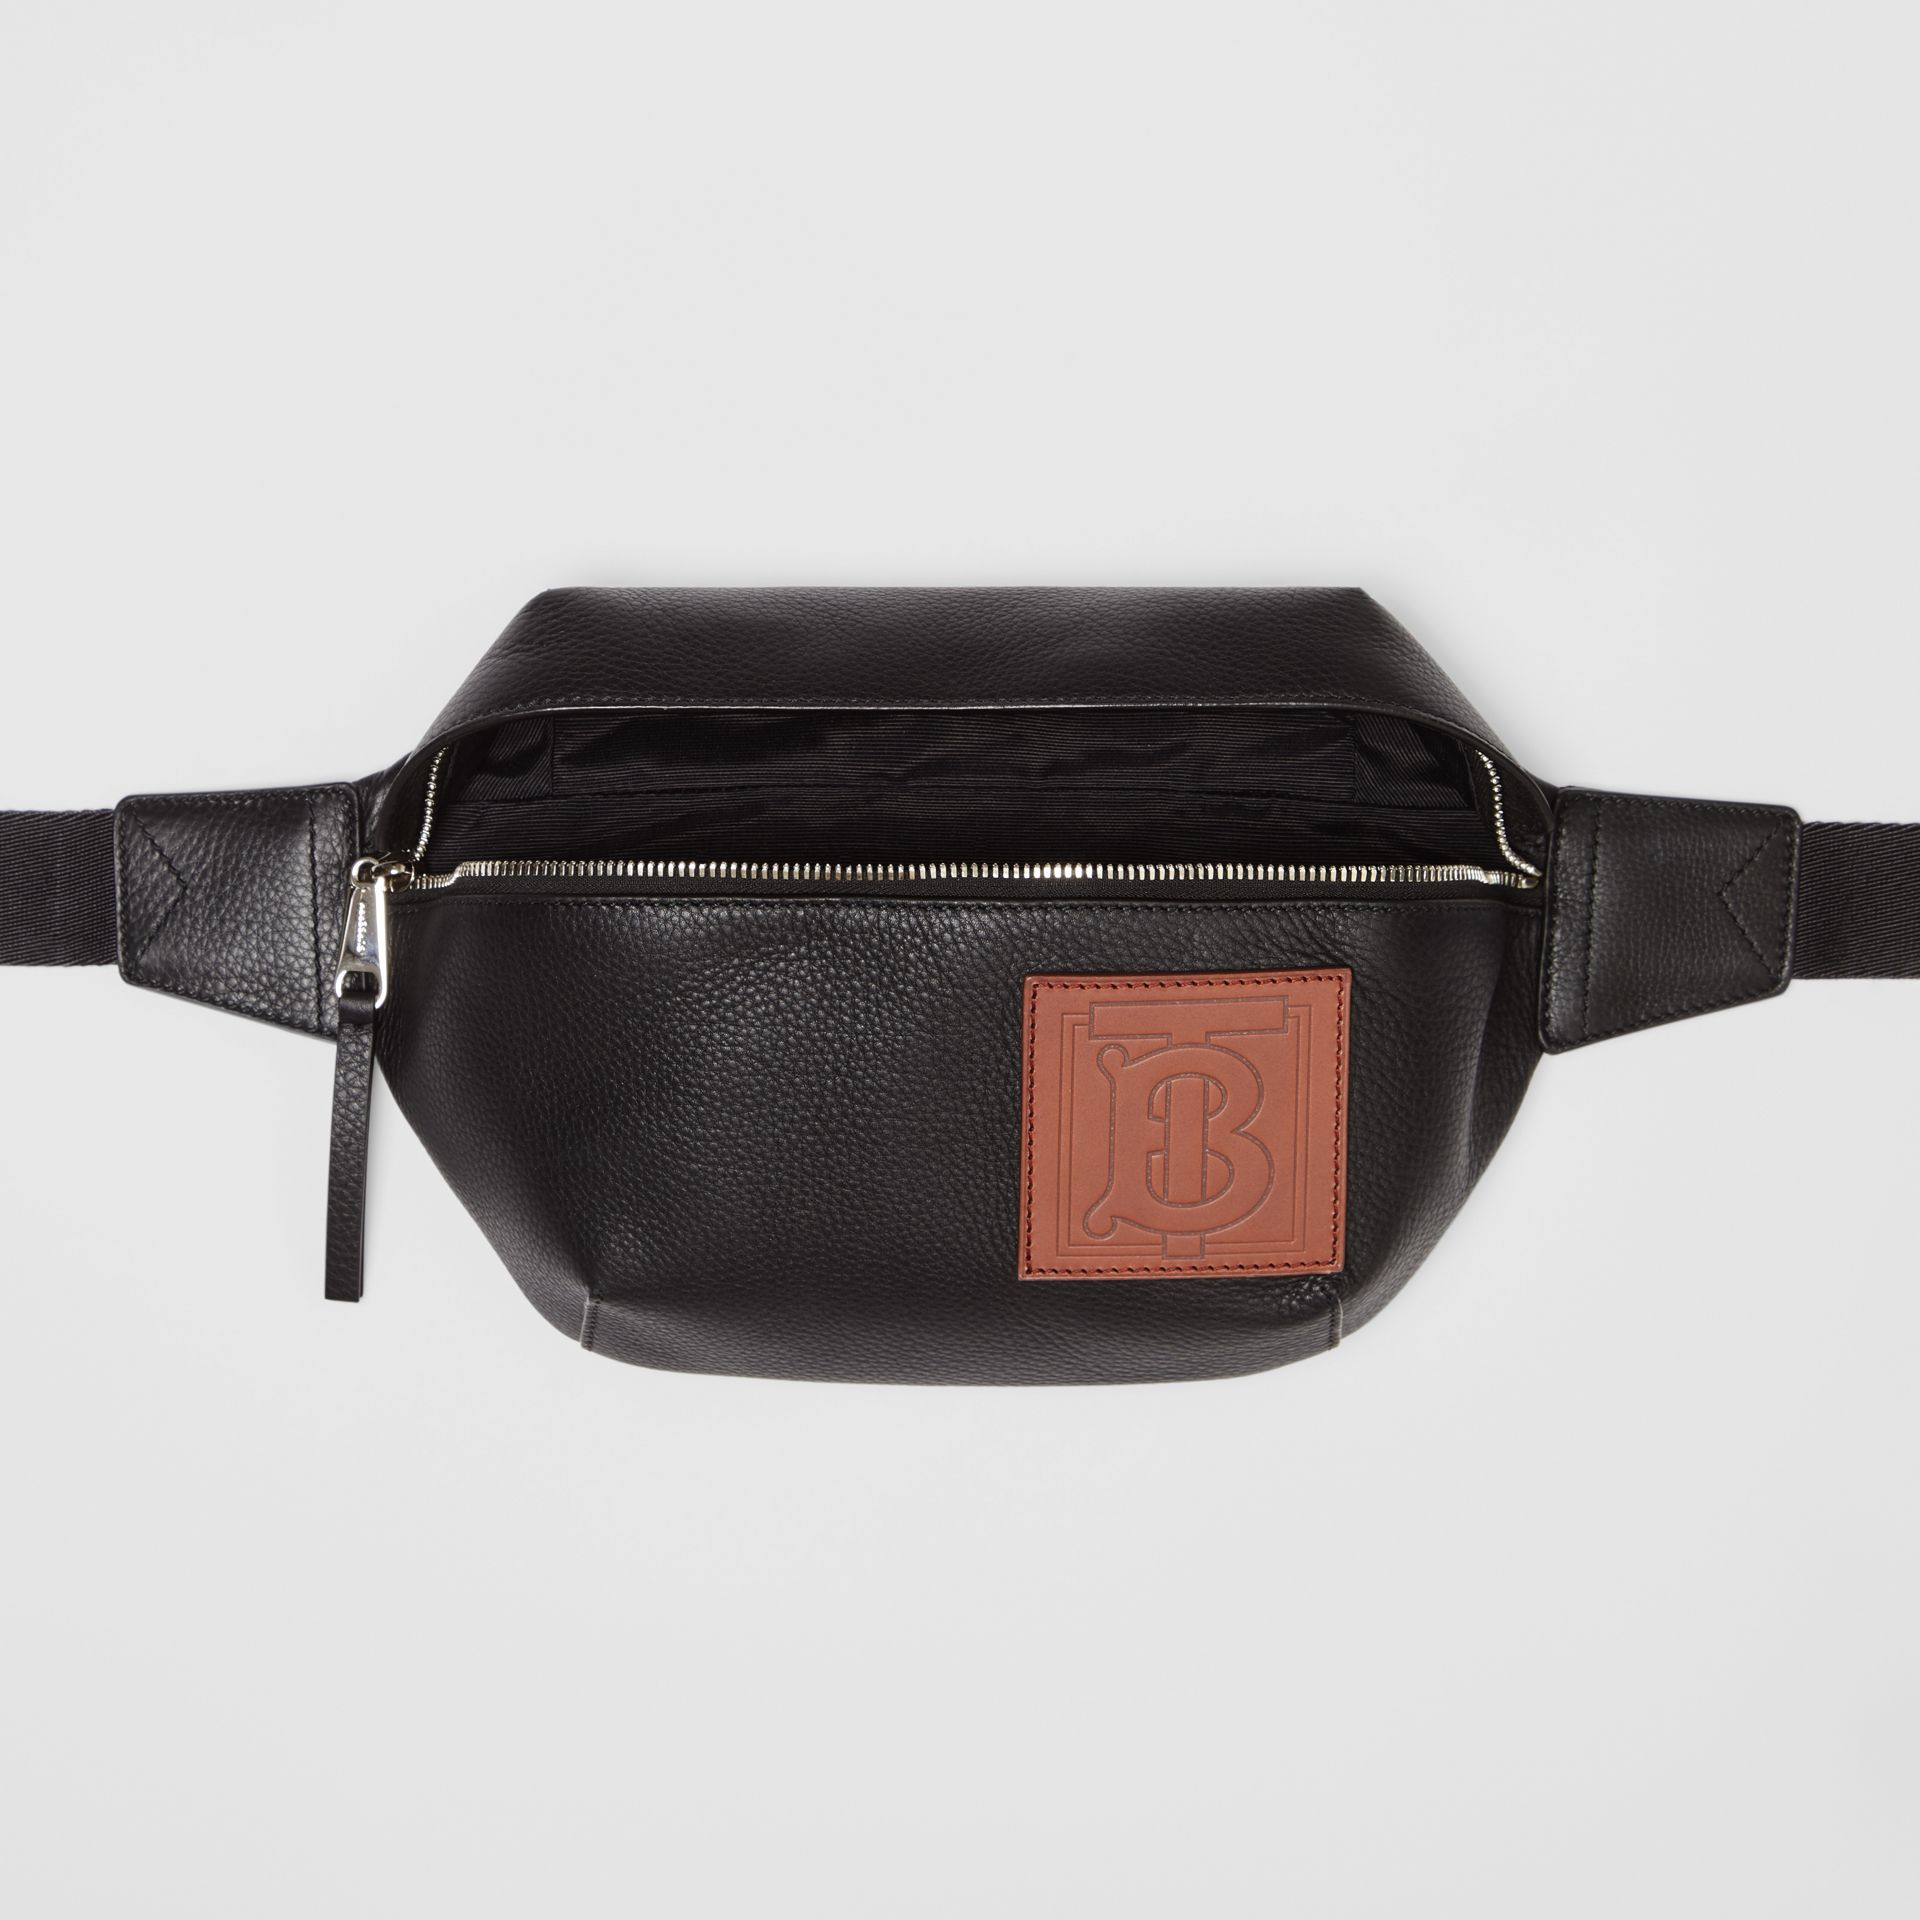 Medium Monogram Motif Leather Bum Bag in Black | Burberry - gallery image 5